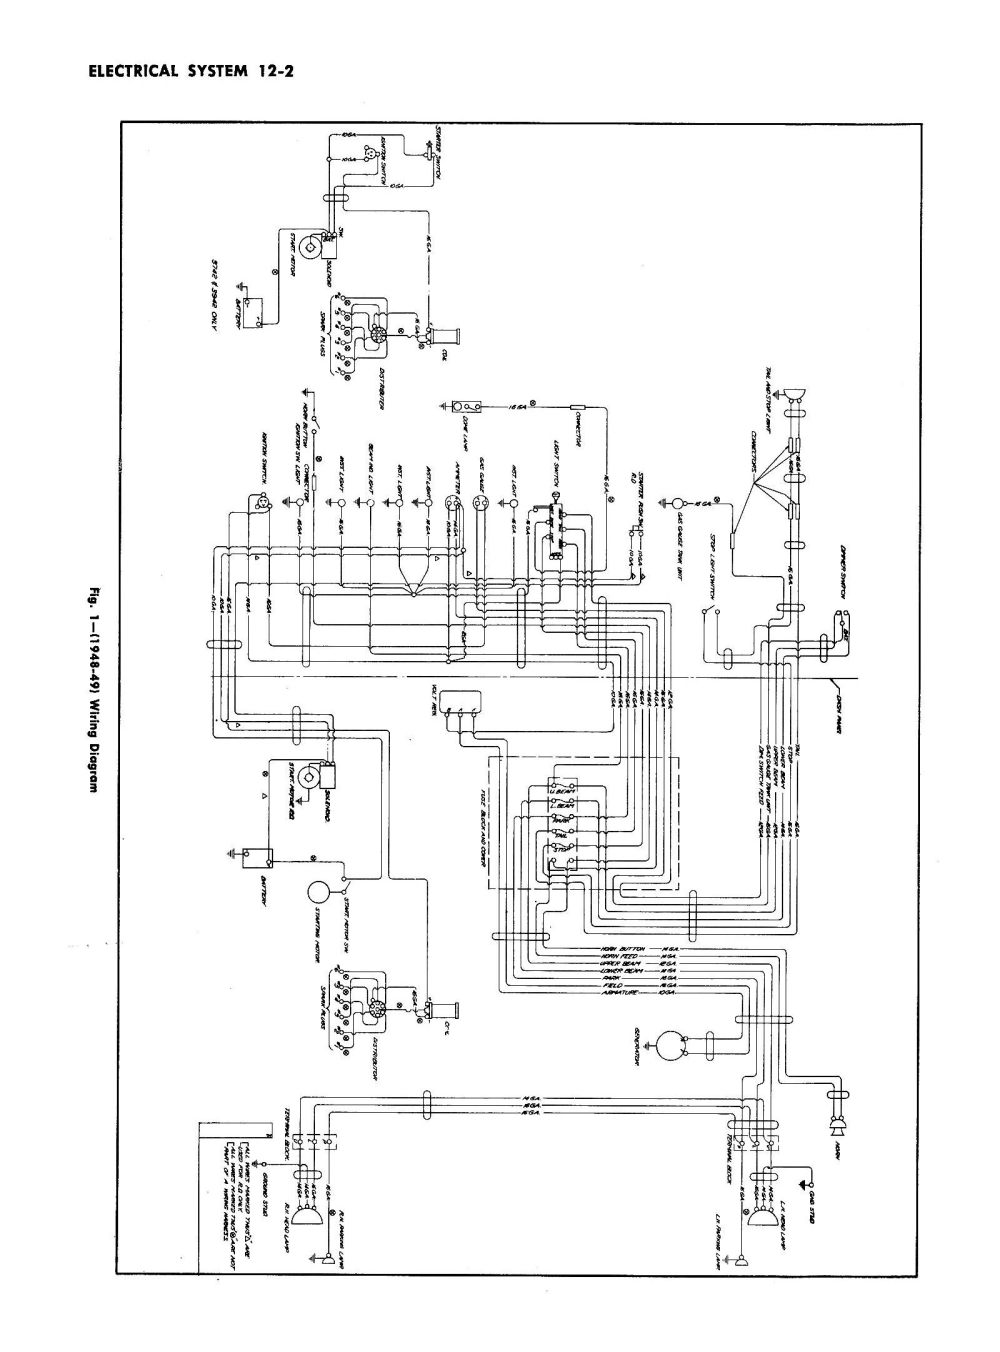 medium resolution of 1954 gm turn signal wiring diagram wiring library rh 31 codingcommunity de gmc sierra wiring schematic